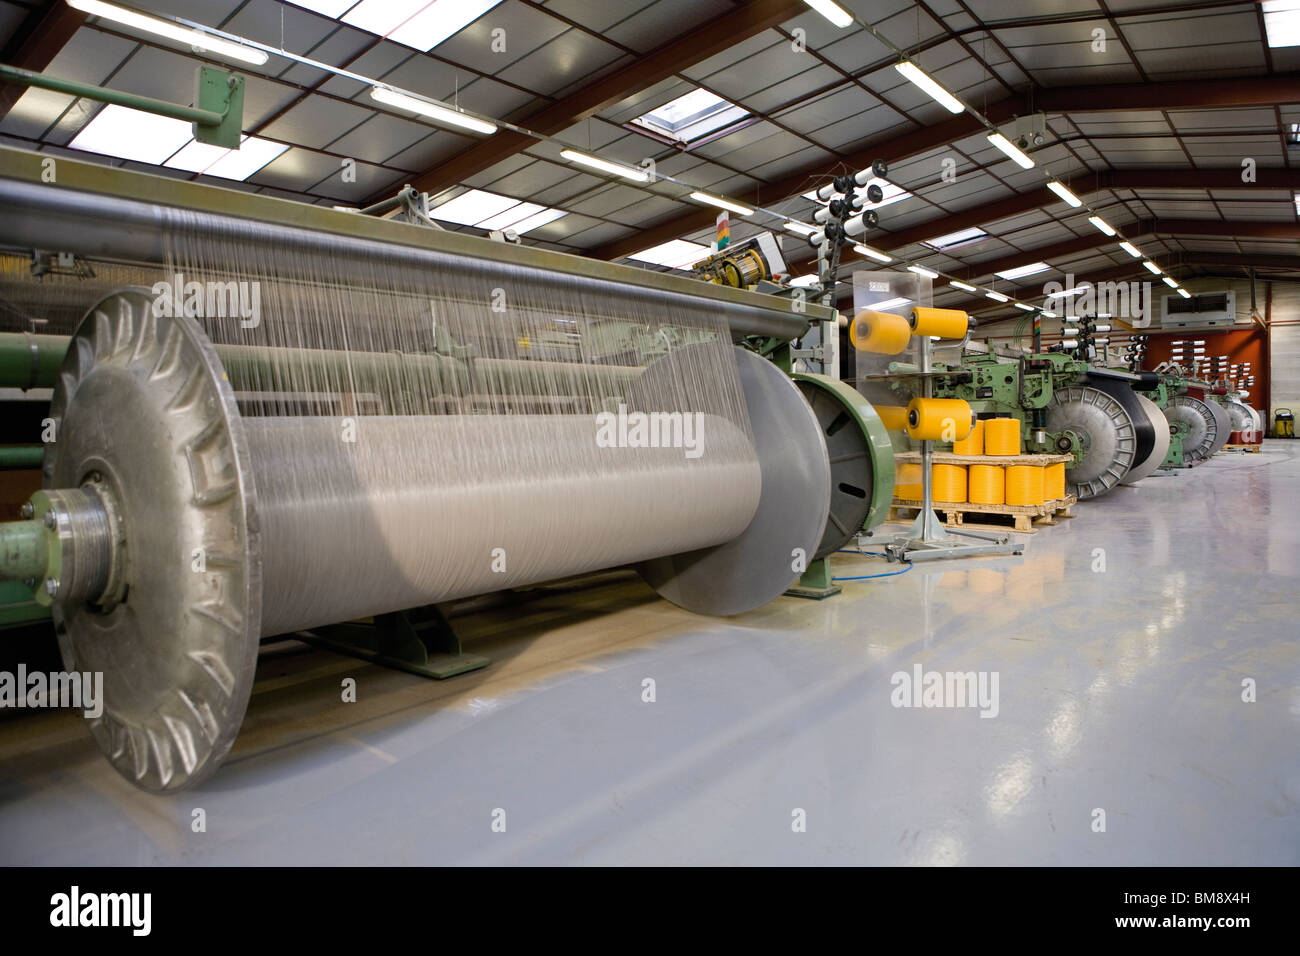 Fabric coating plant, weaving department, weaver's beam and loom Stock Photo